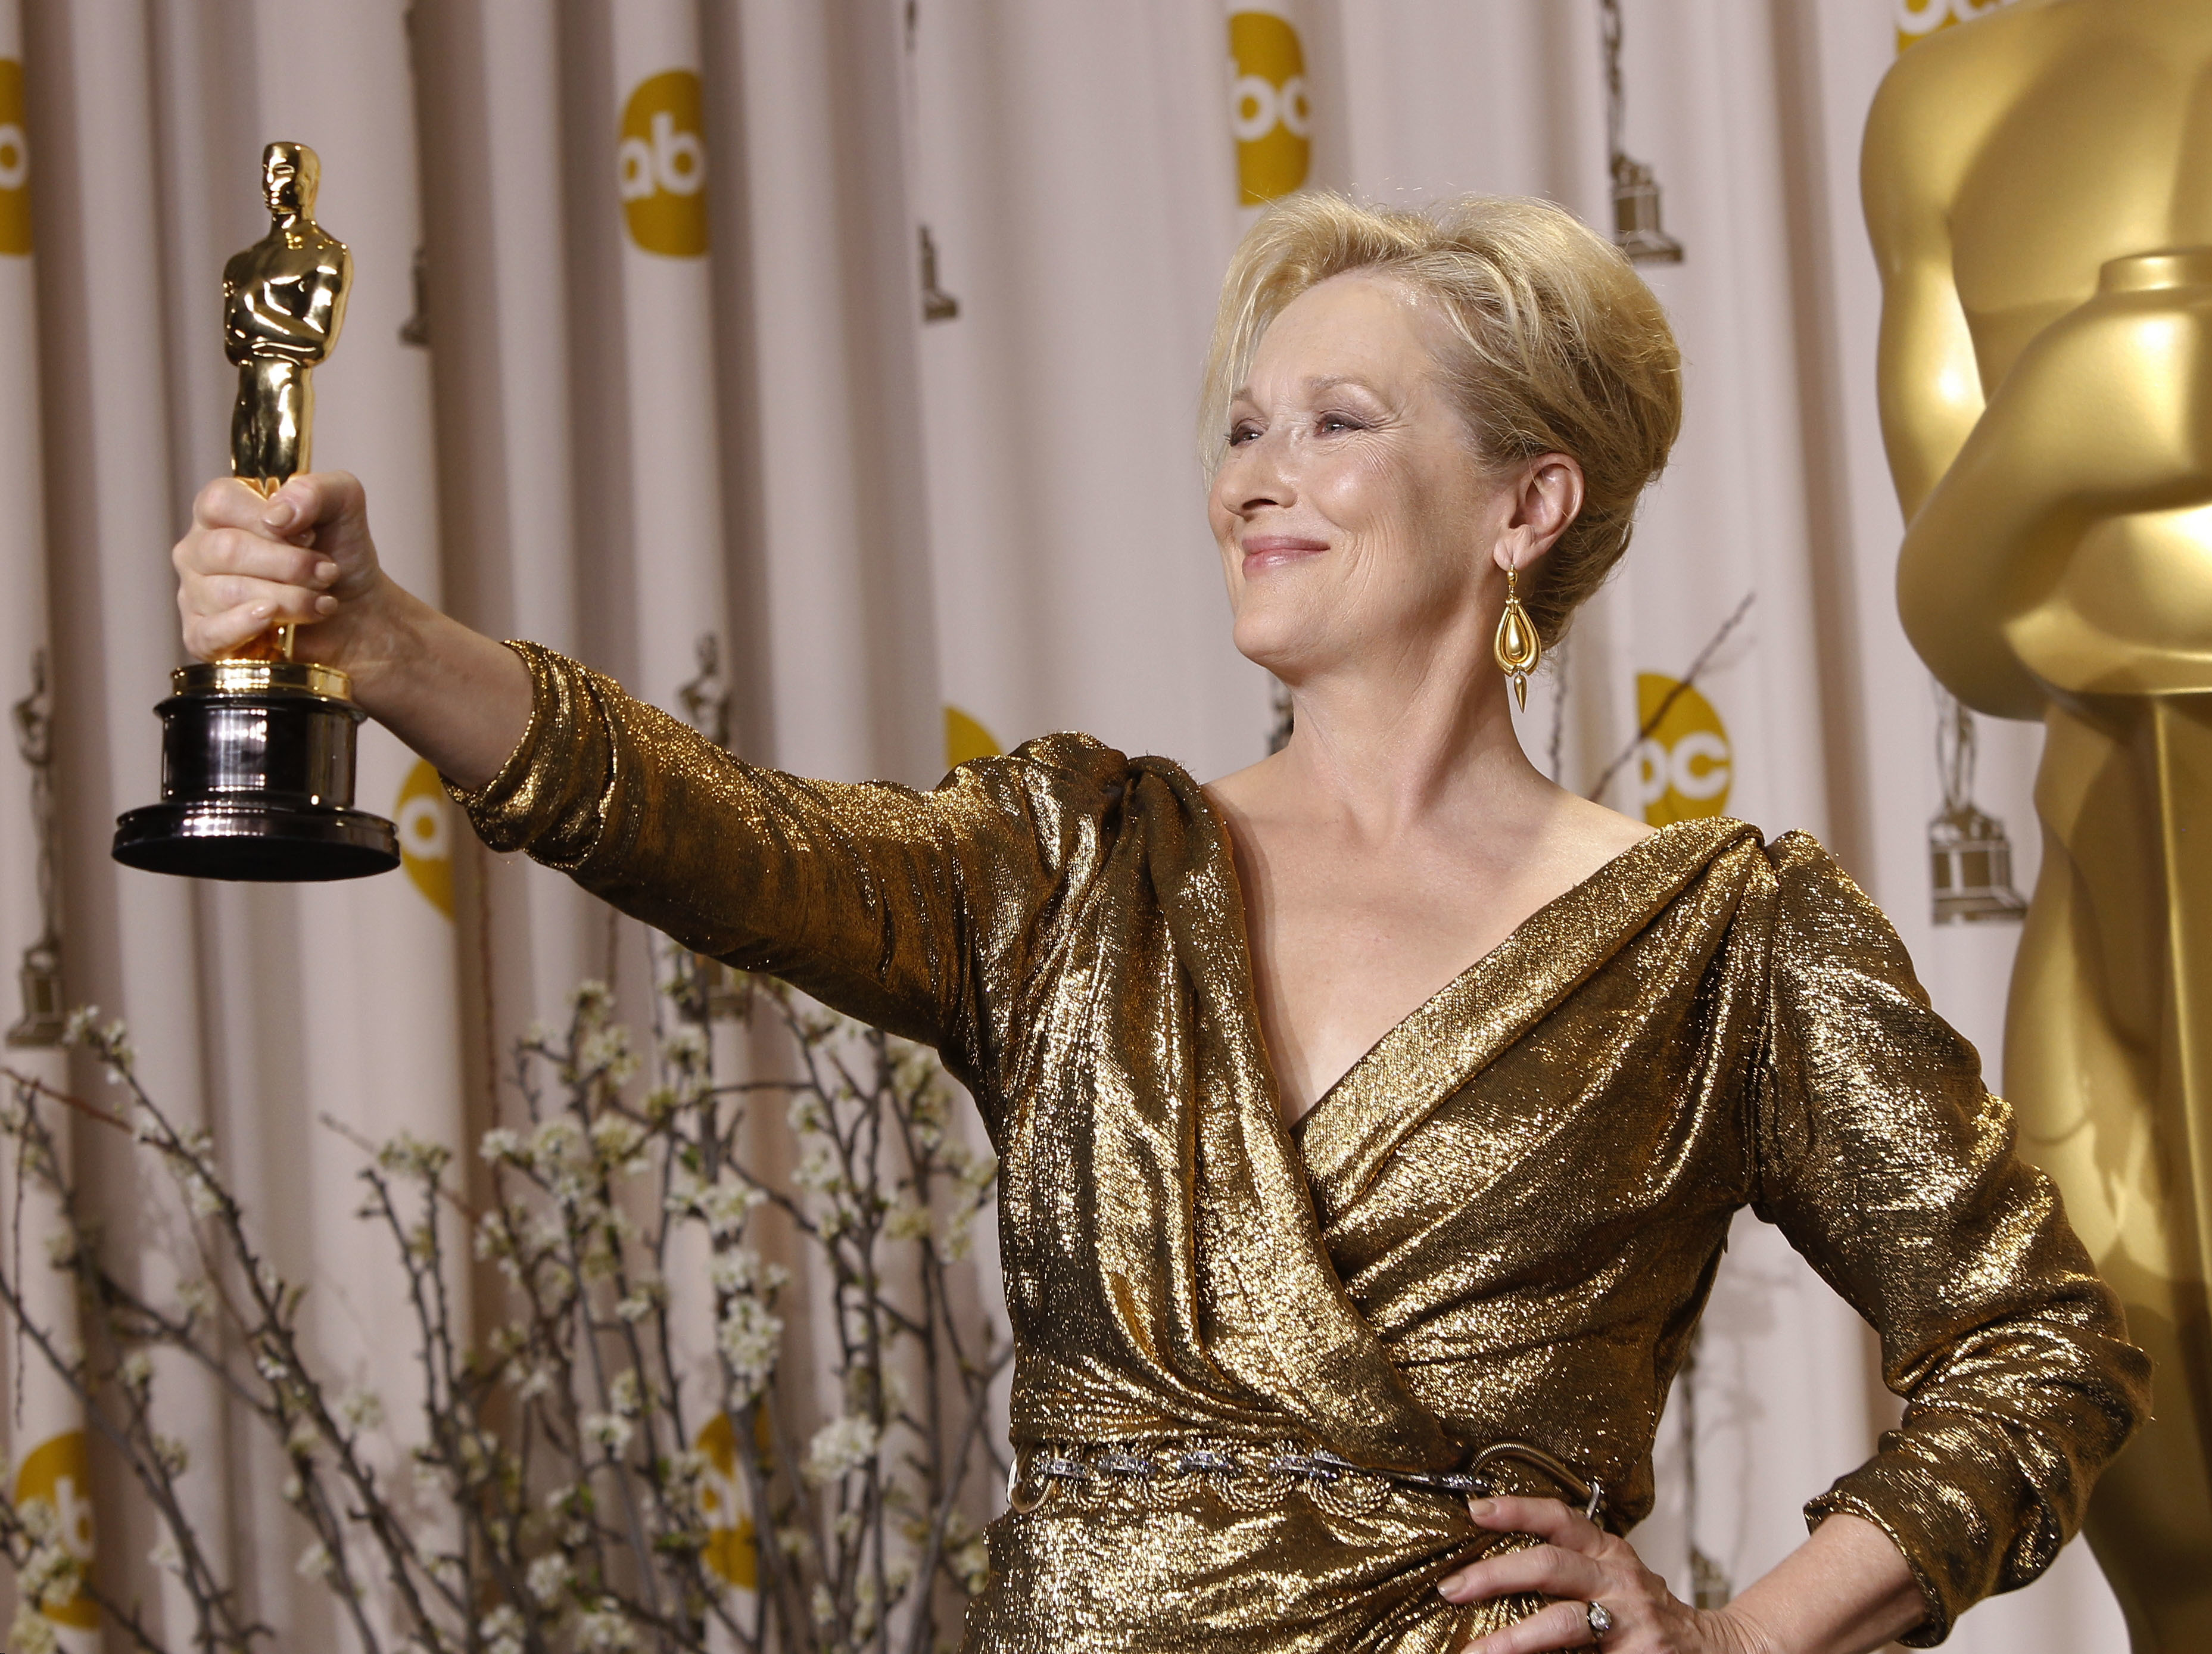 No. 13: She's been nominated for more Oscars than any other actor